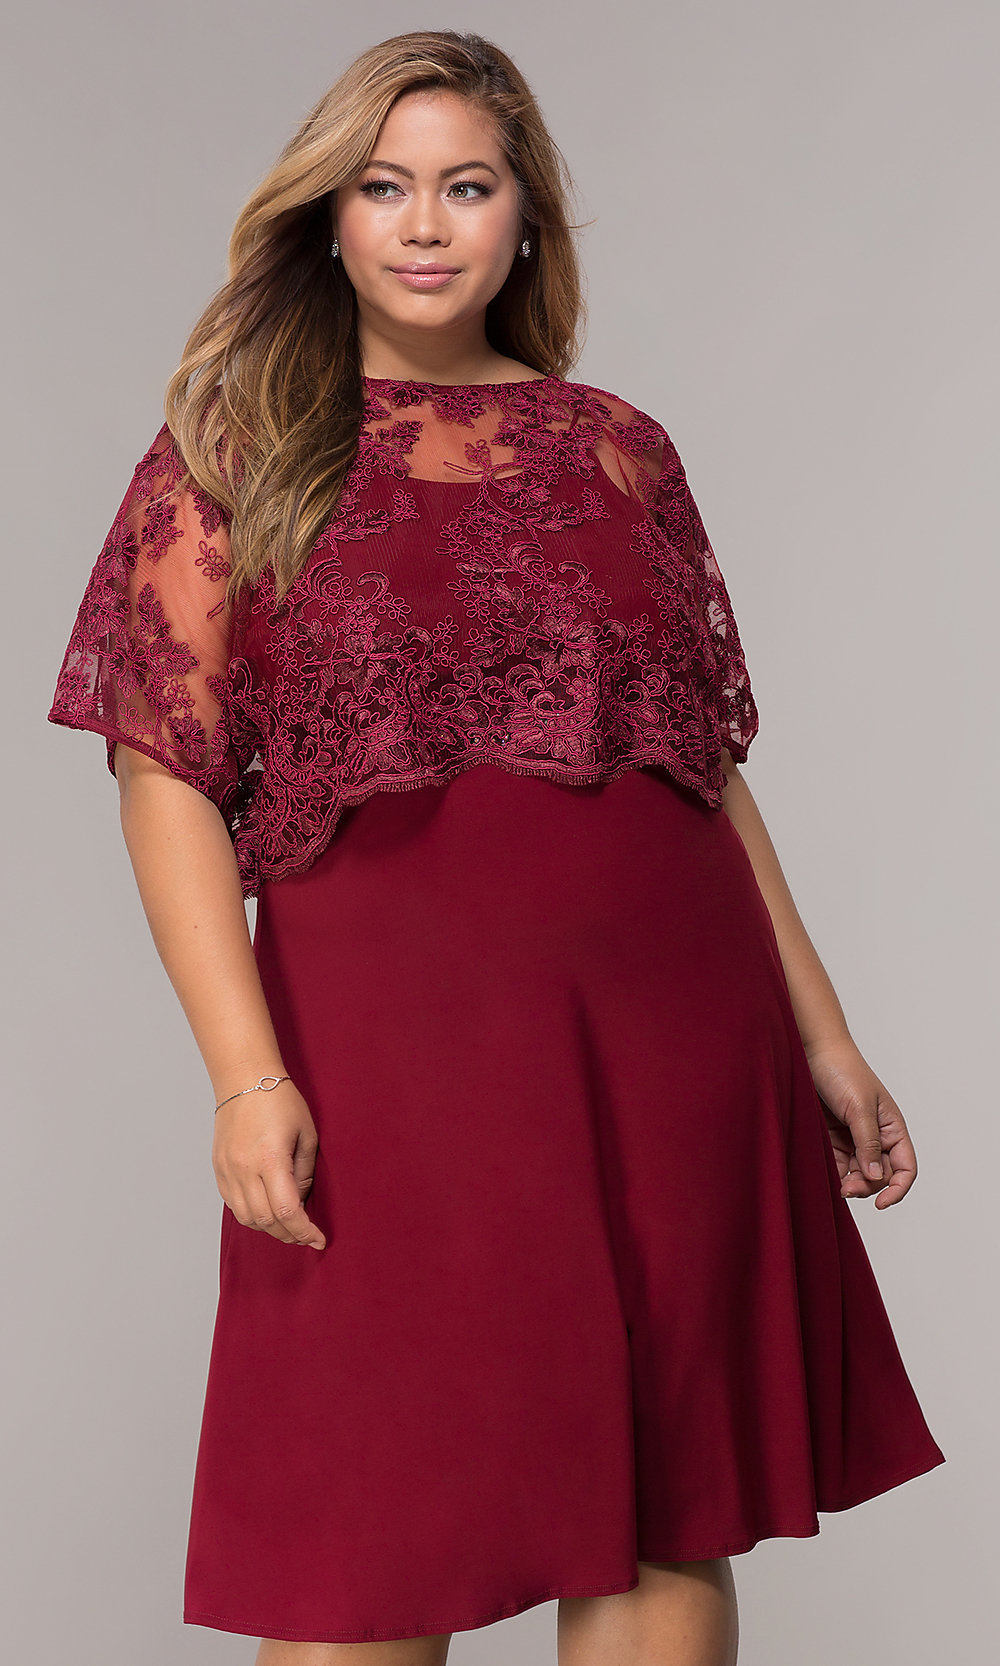 Plus-Size Burgundy Red Knee-Length MOB Dress -PromGirl